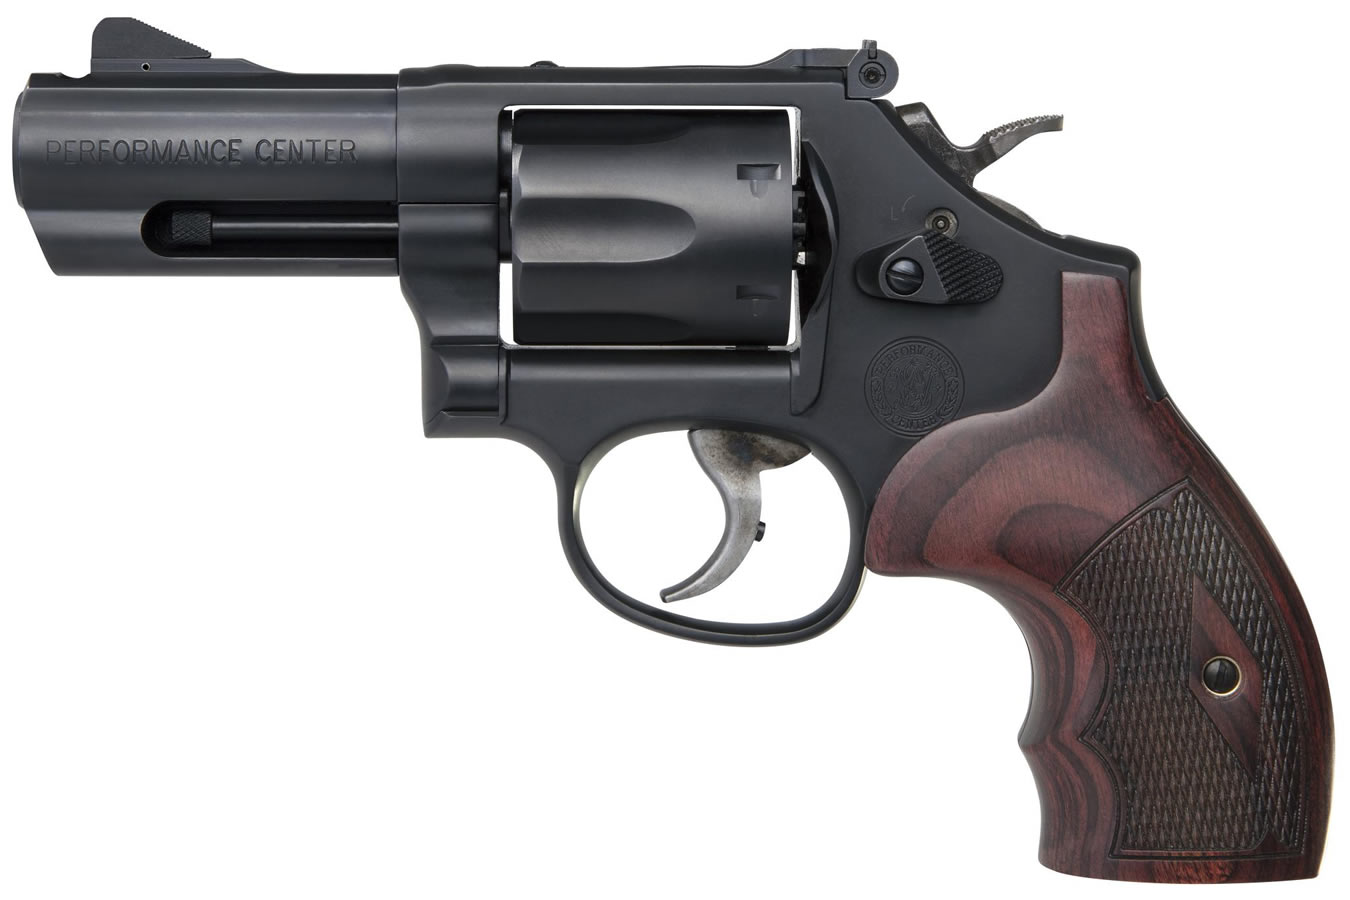 Model 19 Carry Comp 357 Mag Performance Center Double Action Revolver